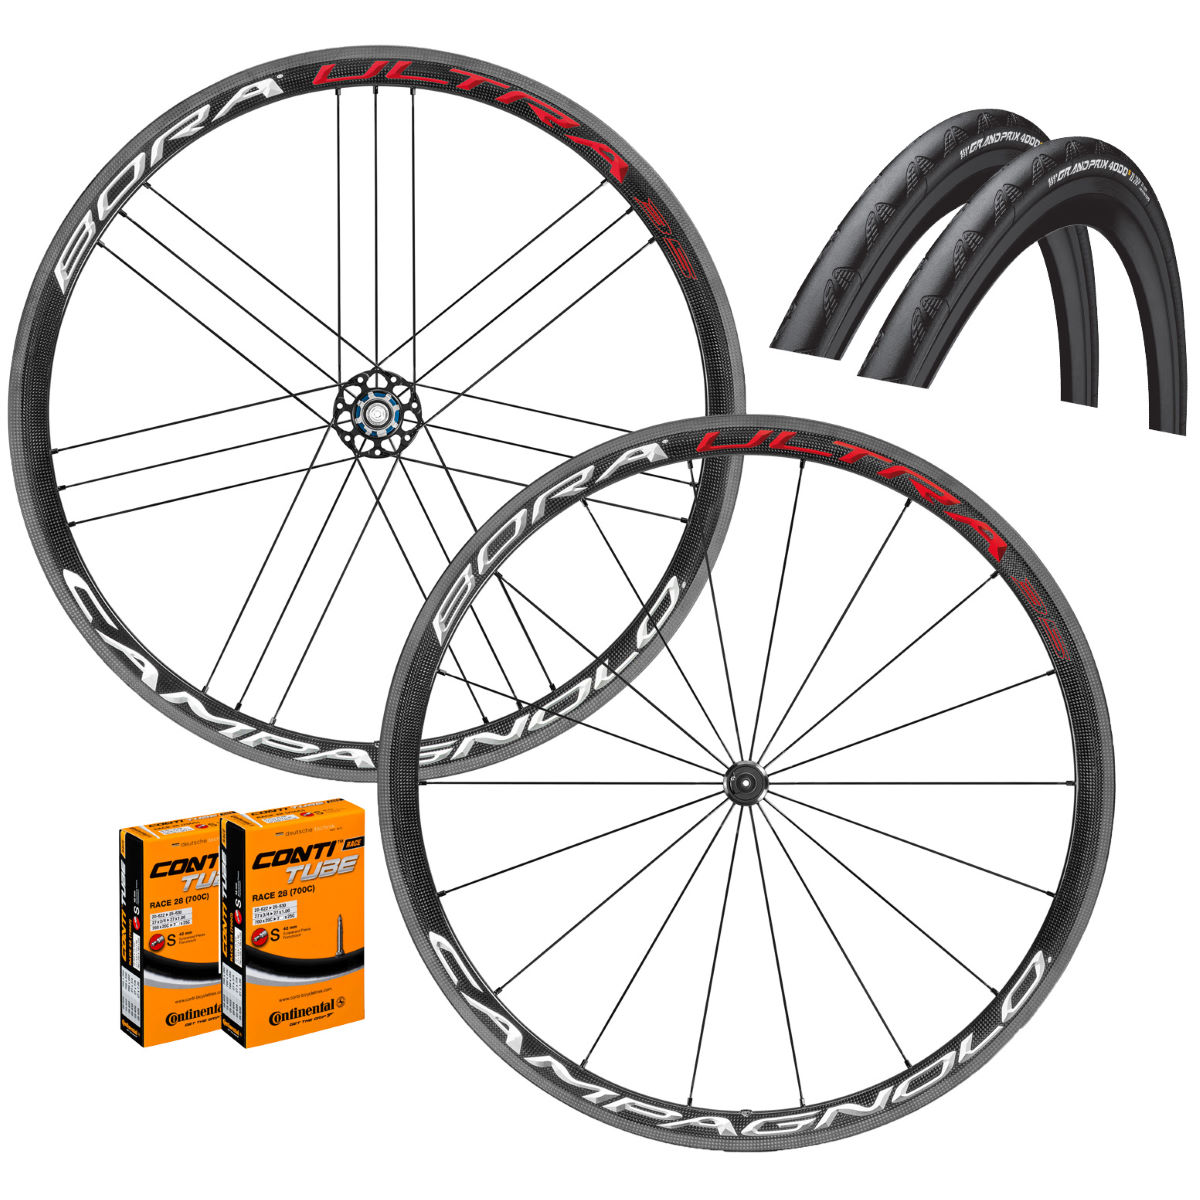 Campagnolo Bora Ultra 35 Clincher Wheels GP4000s II Bundle - Wheel sets